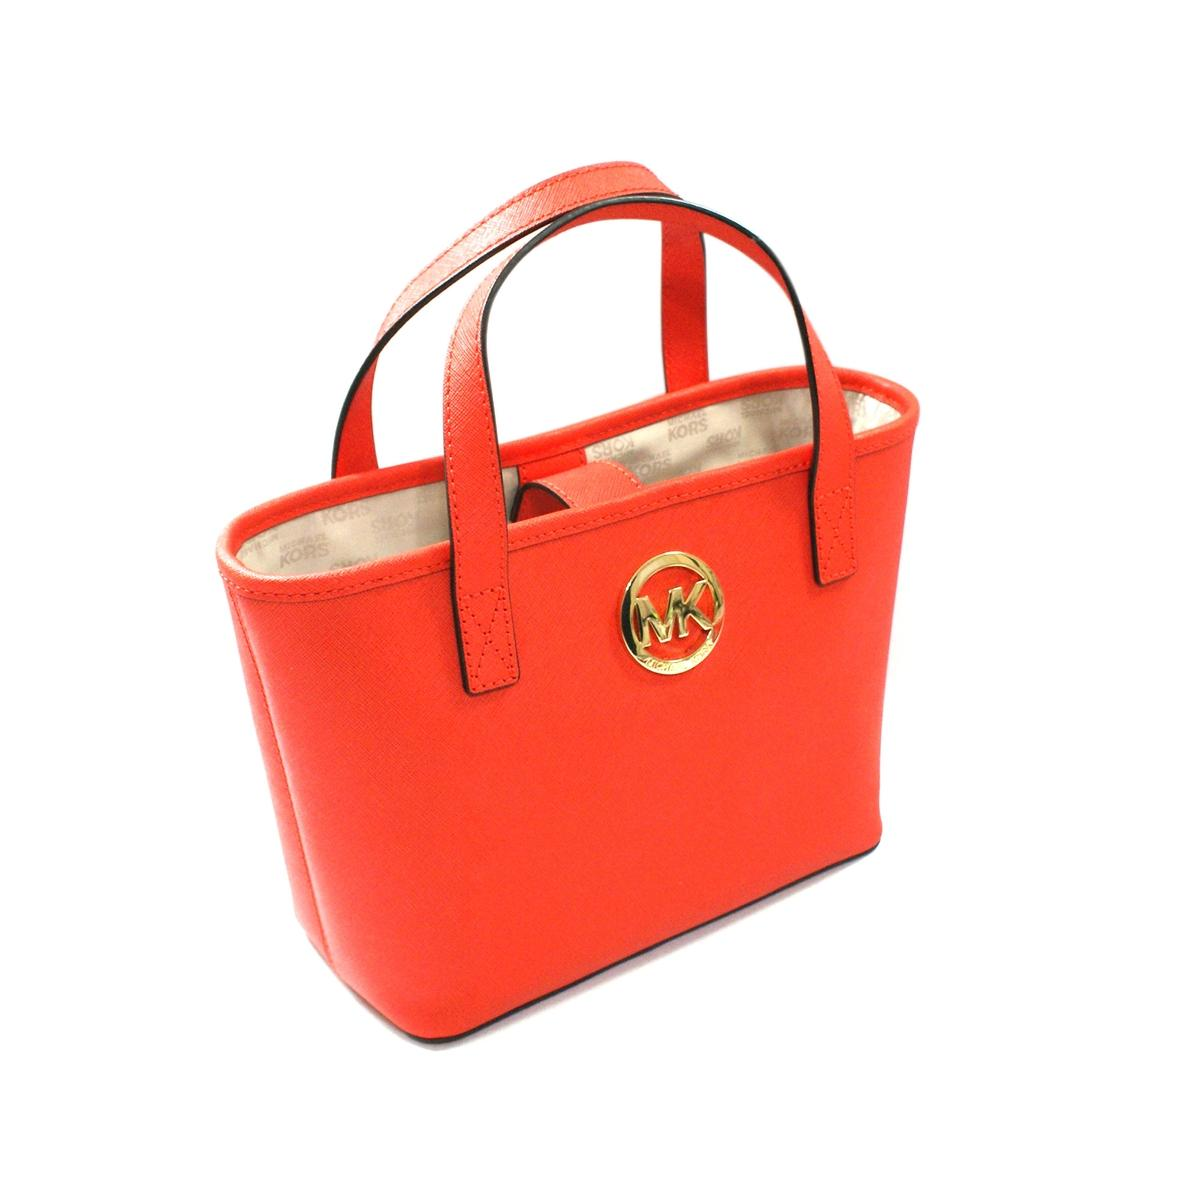 32342bca97322 ... cheap home michael kors jet set xs small travel tote mandarin. click  thumbnail to zoom